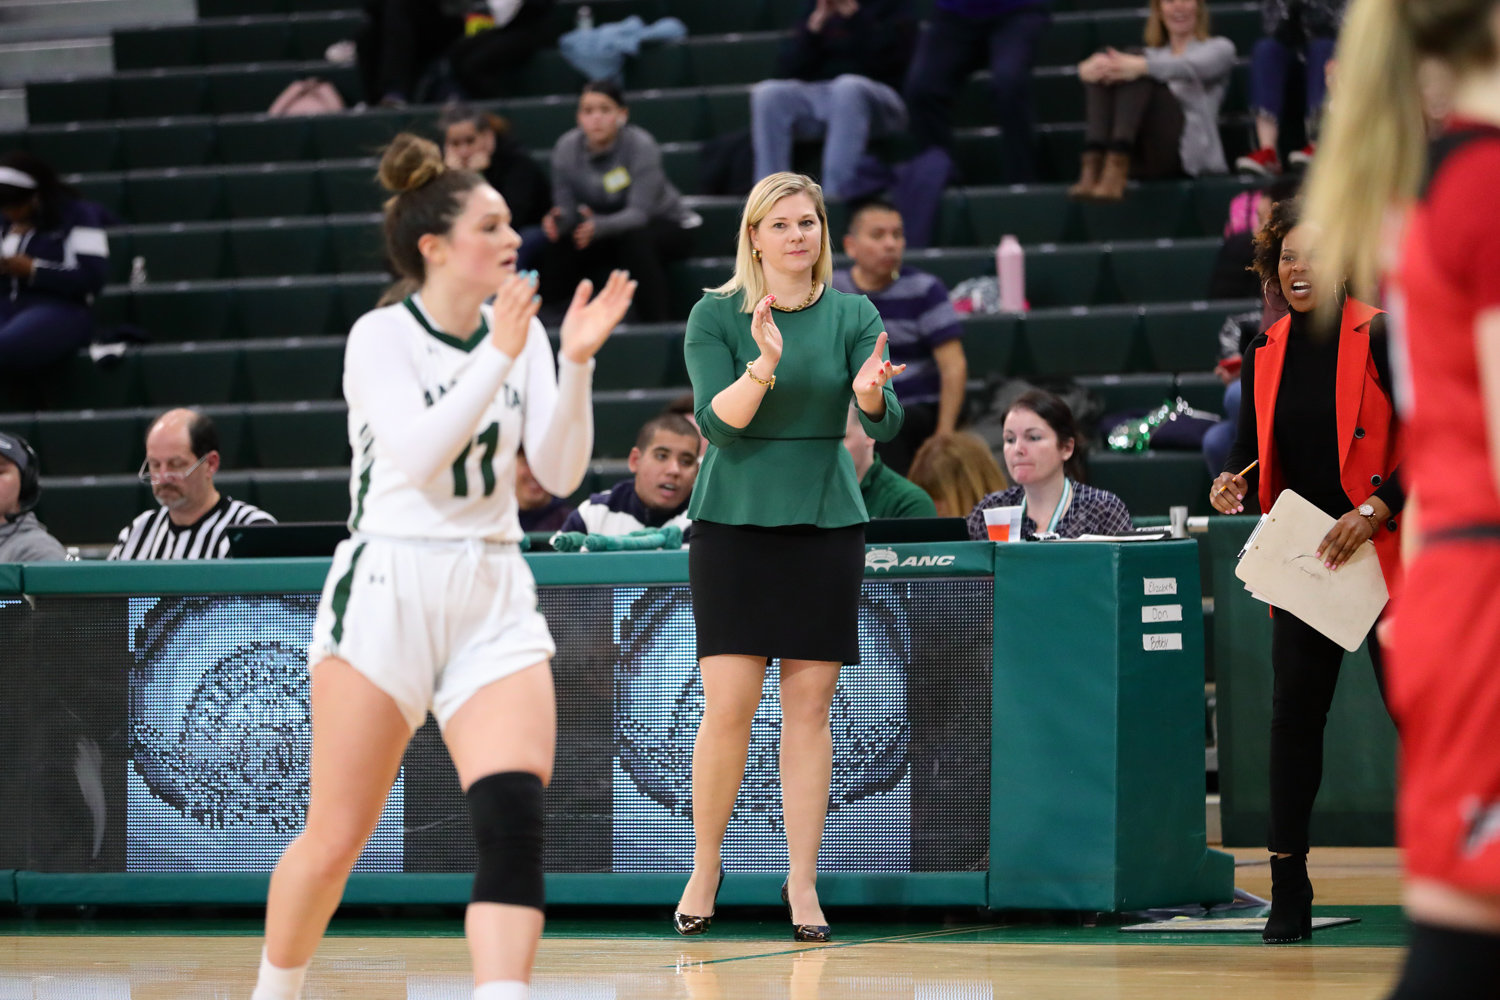 With a victory over Monmouth in Manhattan's regular-season finale, the Jaspers notched their 15th win of the season, the highest single-season win total in head coach Heather Vulin's four seasons at the helm.